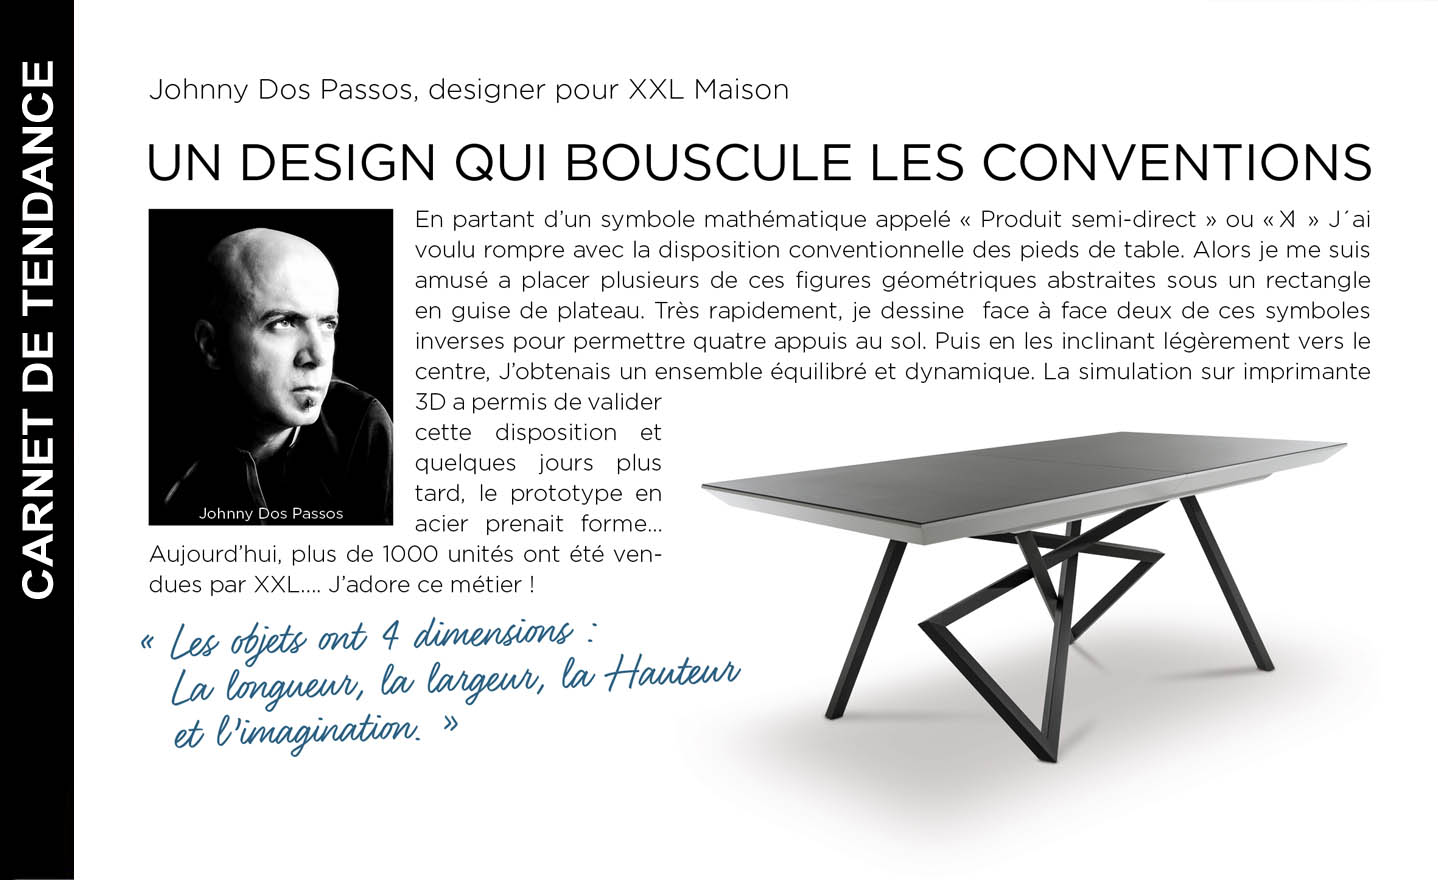 Meubles Yvrai Catalogue Canapé Design Meubles Design Meubles De Salon Contemporains